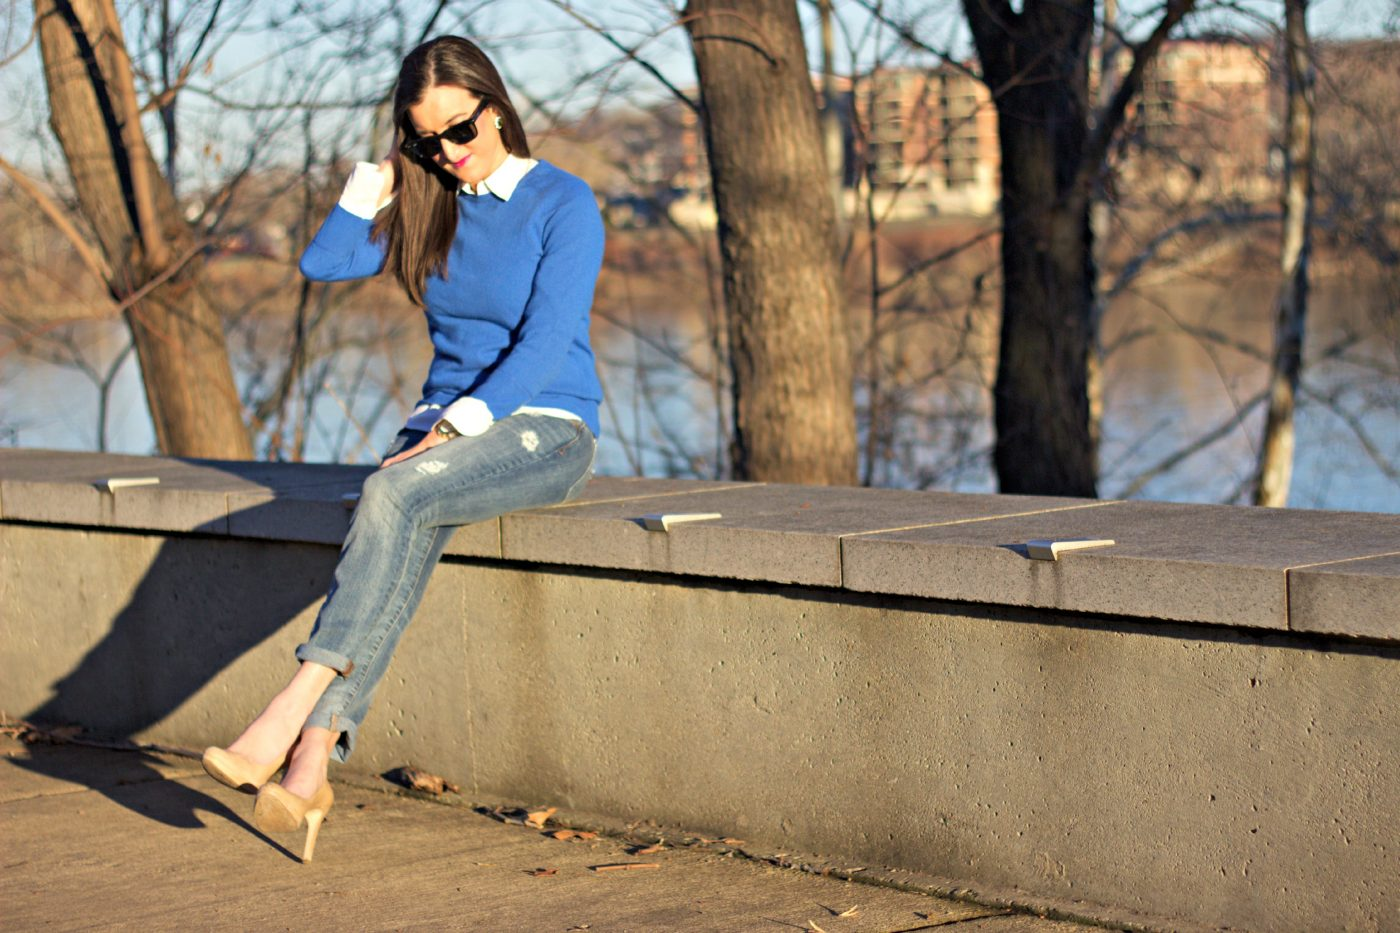 Cobalt Crewneck Sweater with Skinny Jeans